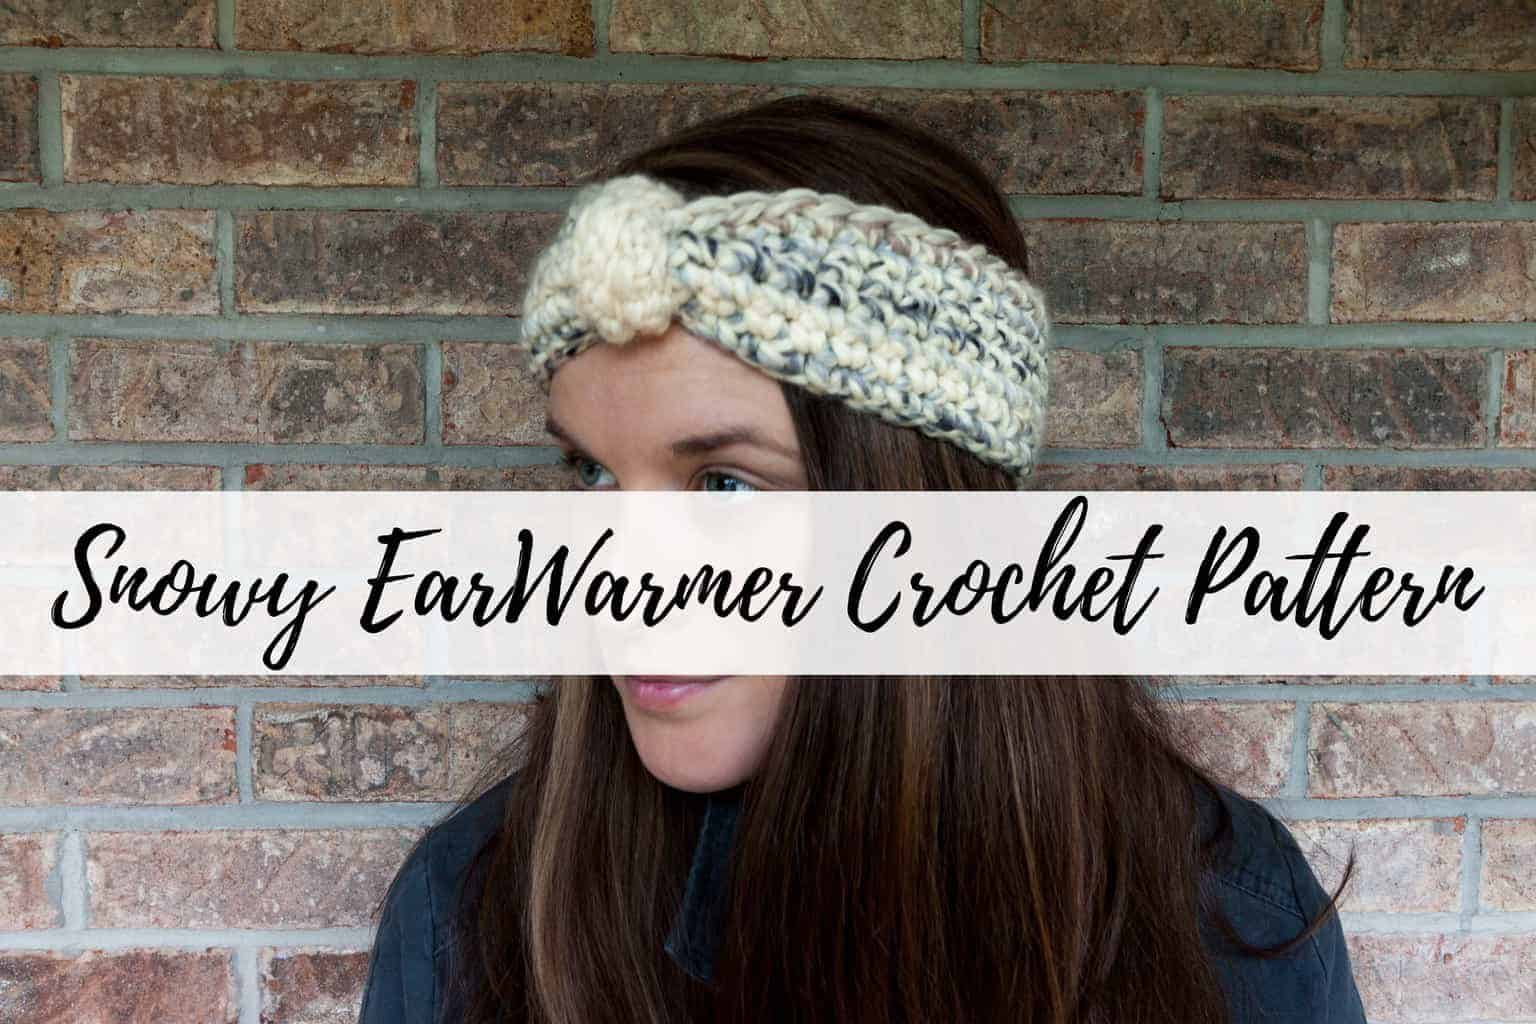 Snowy Crochet Earwarmer Pattern by Rescued Paw Designs - Make this easy beginner friendly pattern today!